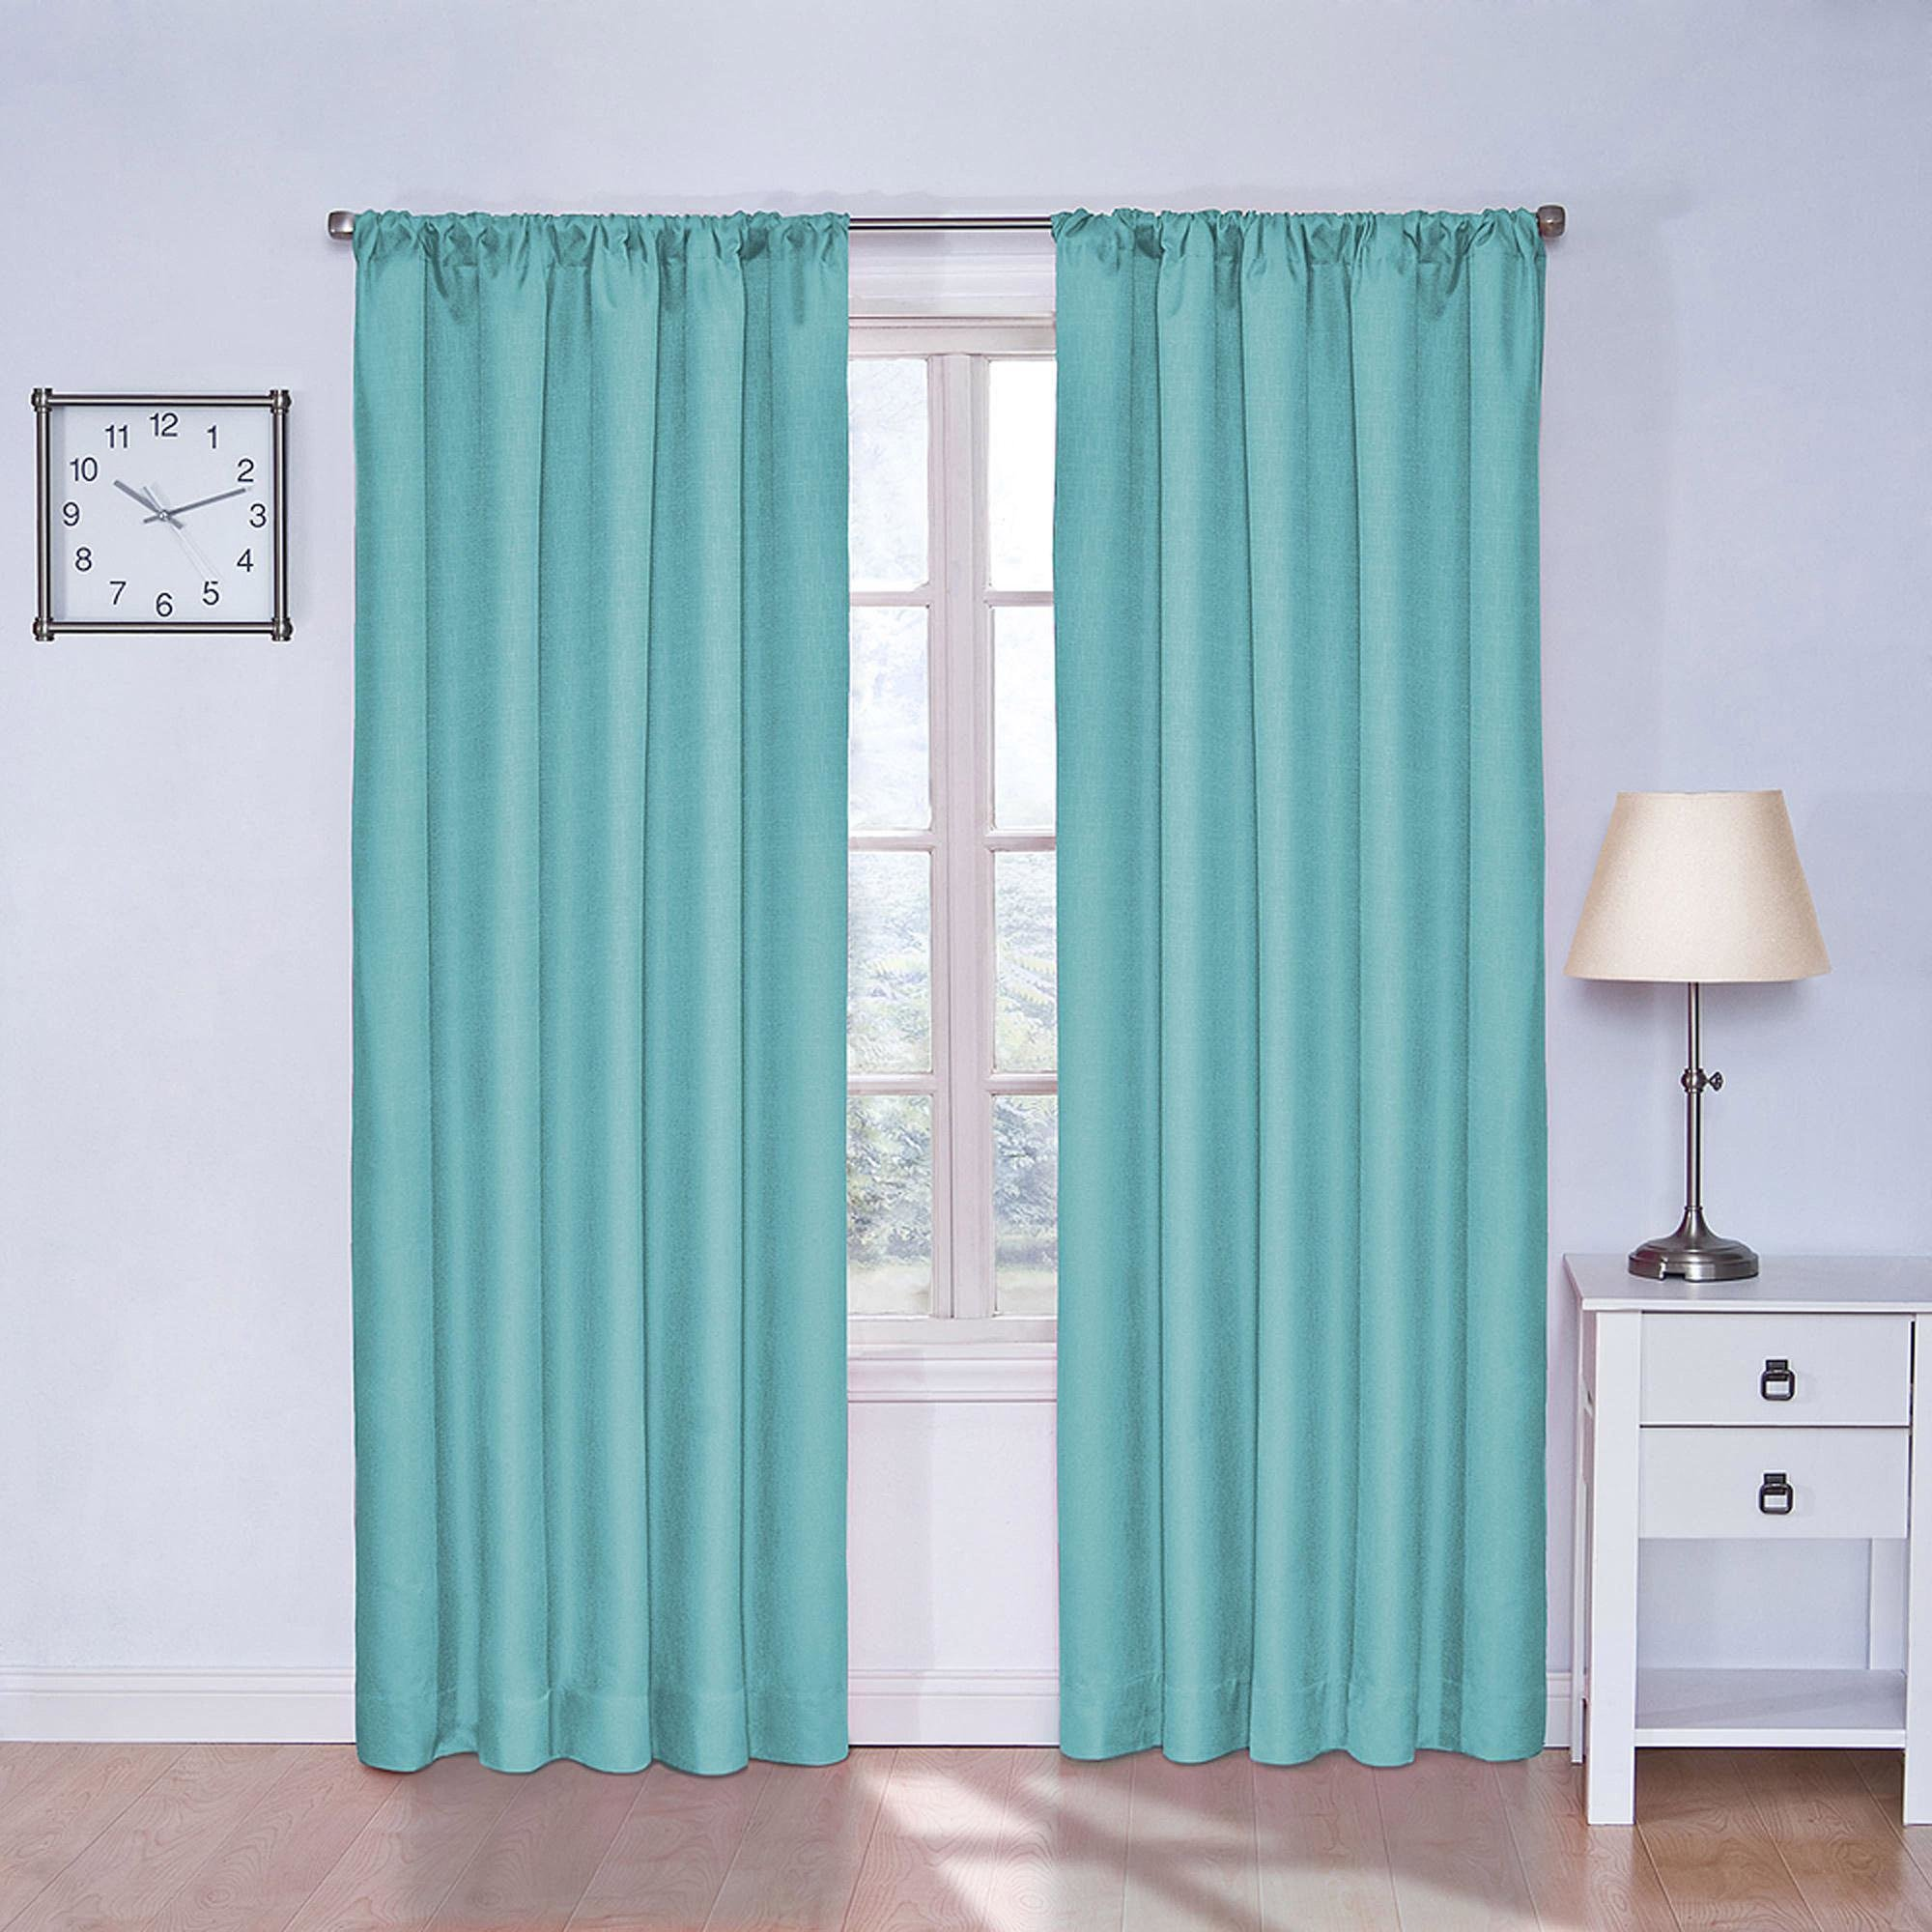 Best Curtain Curtains At Walmart For Elegant Home Accessories Design Ideas — Whereishemsworth Com With Pictures